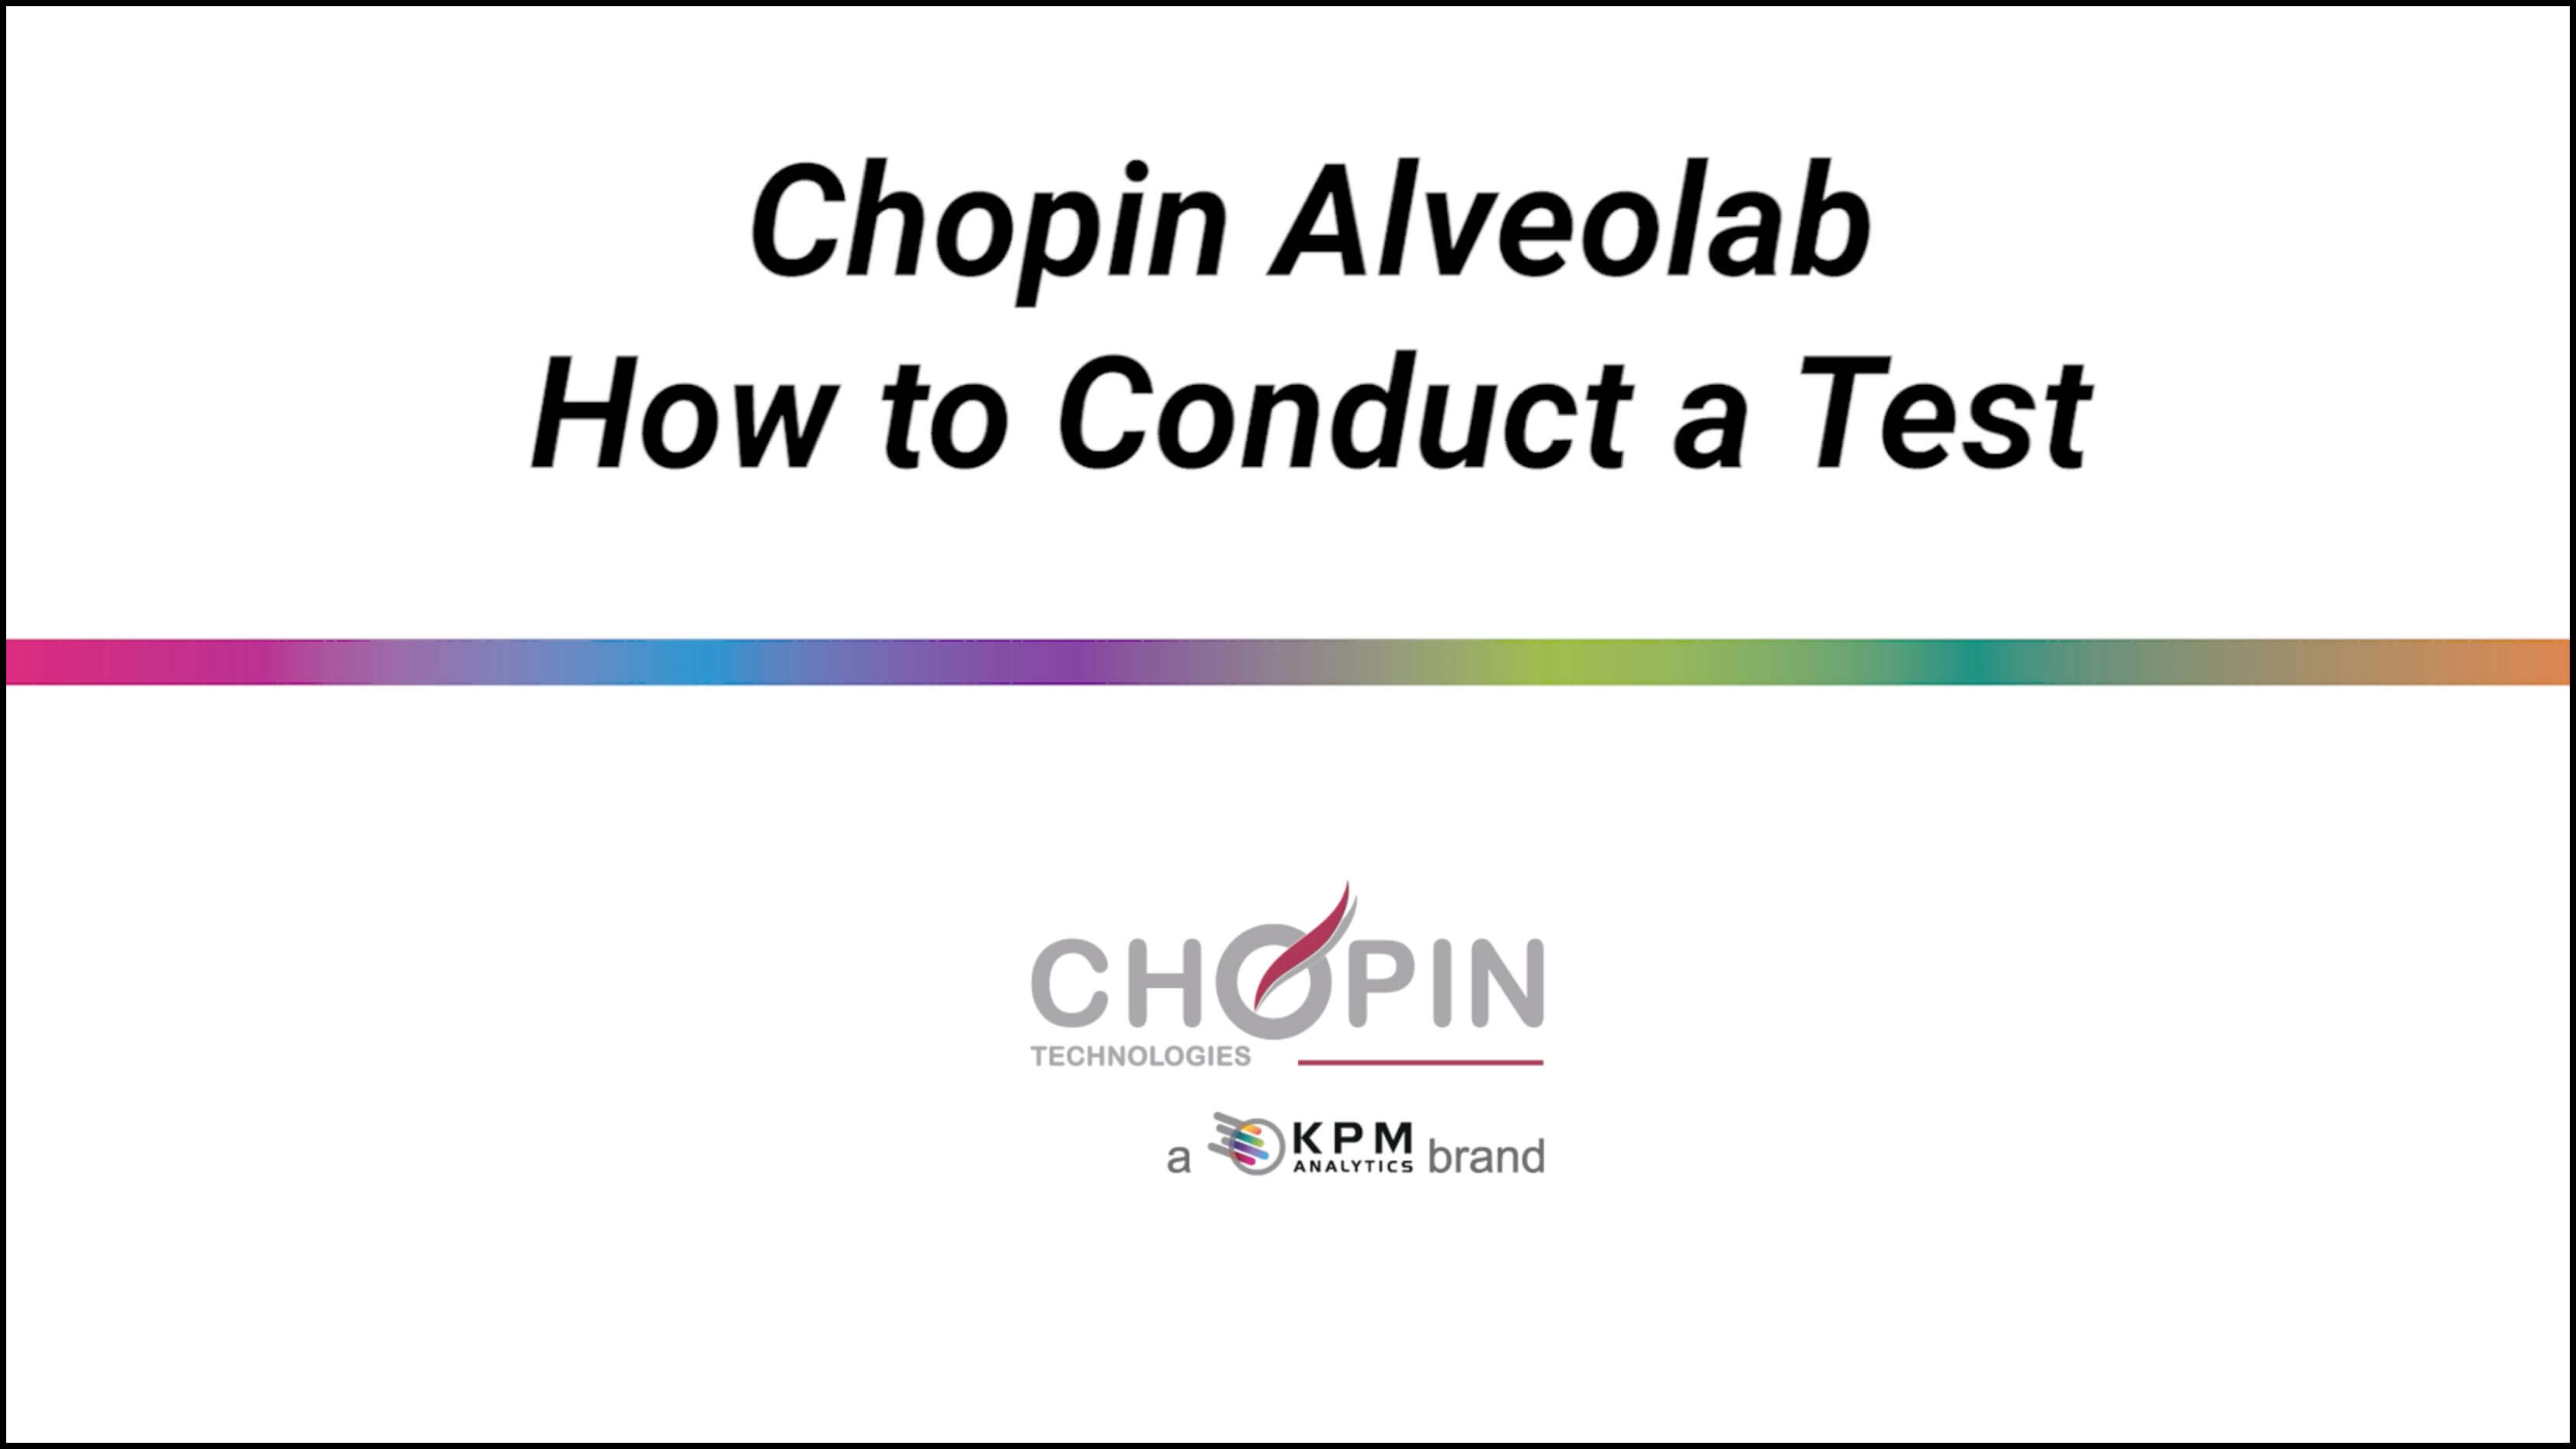 CHOPIN Alveolab - How to Conduct a Test